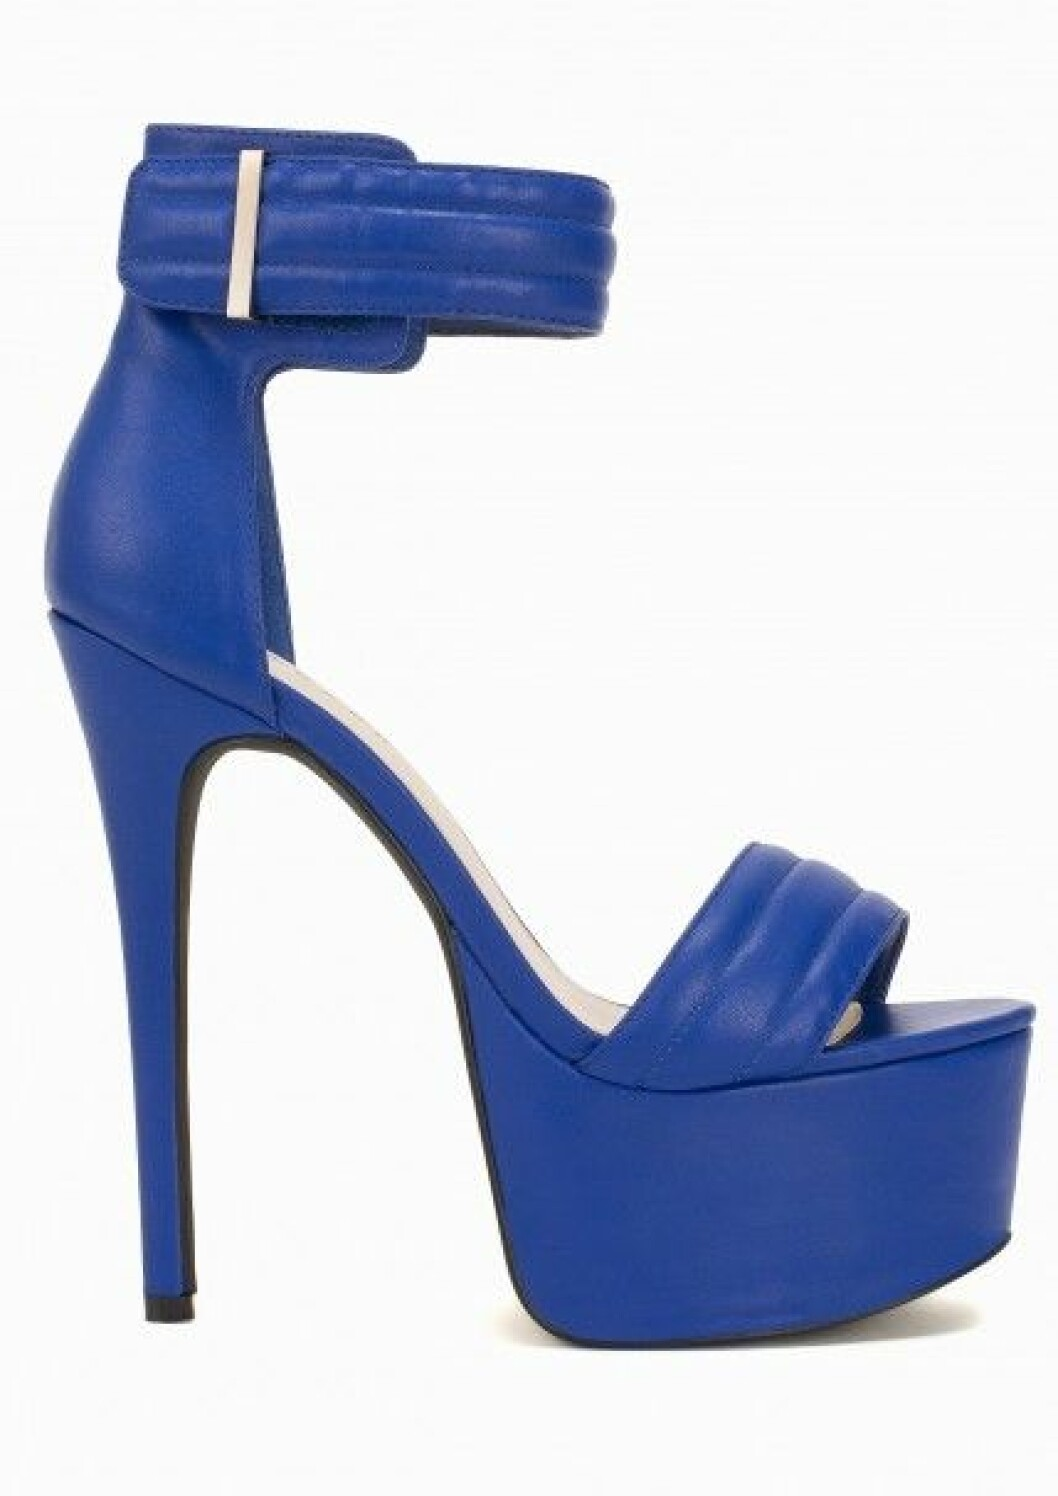 NELLY.COM_NLYShoes_429349-0029